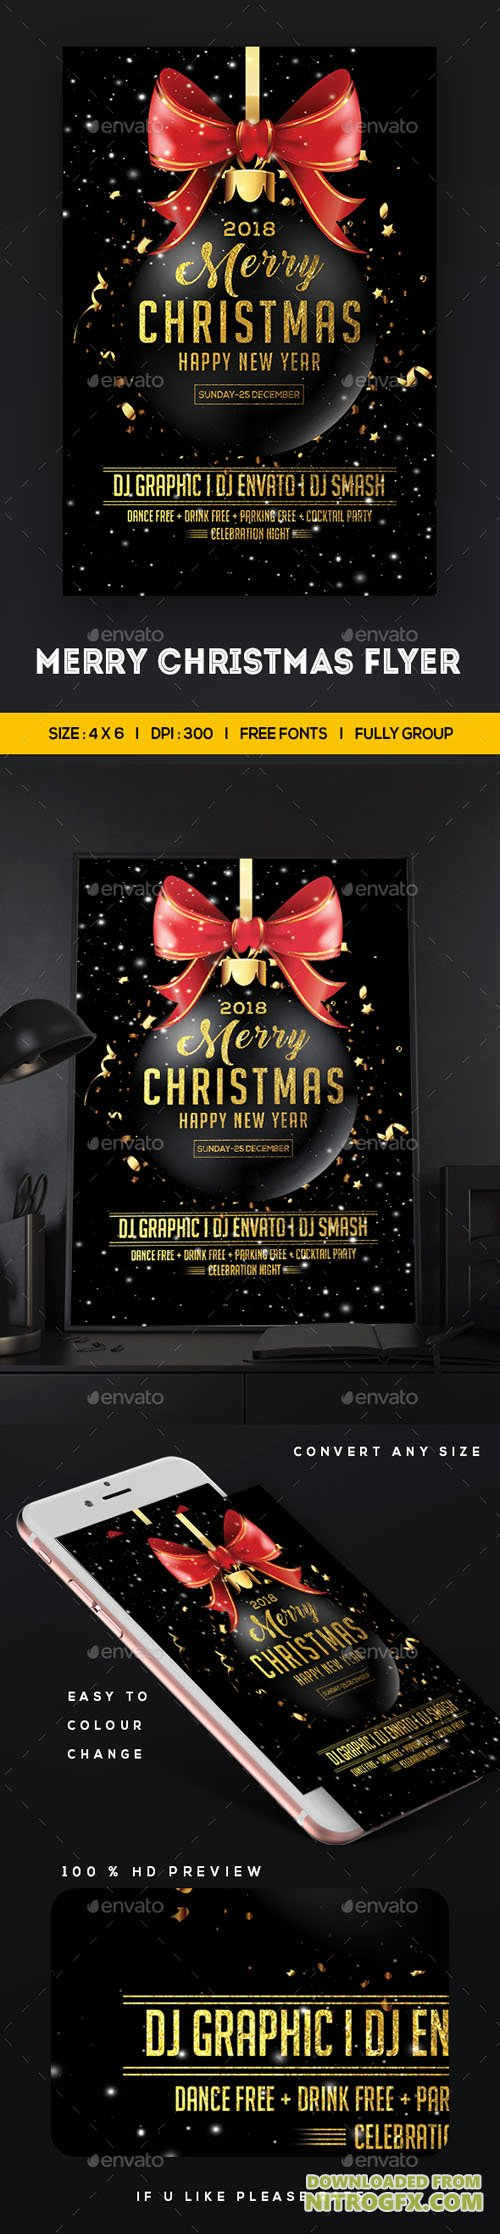 Merry Christmas Flyer 20950842